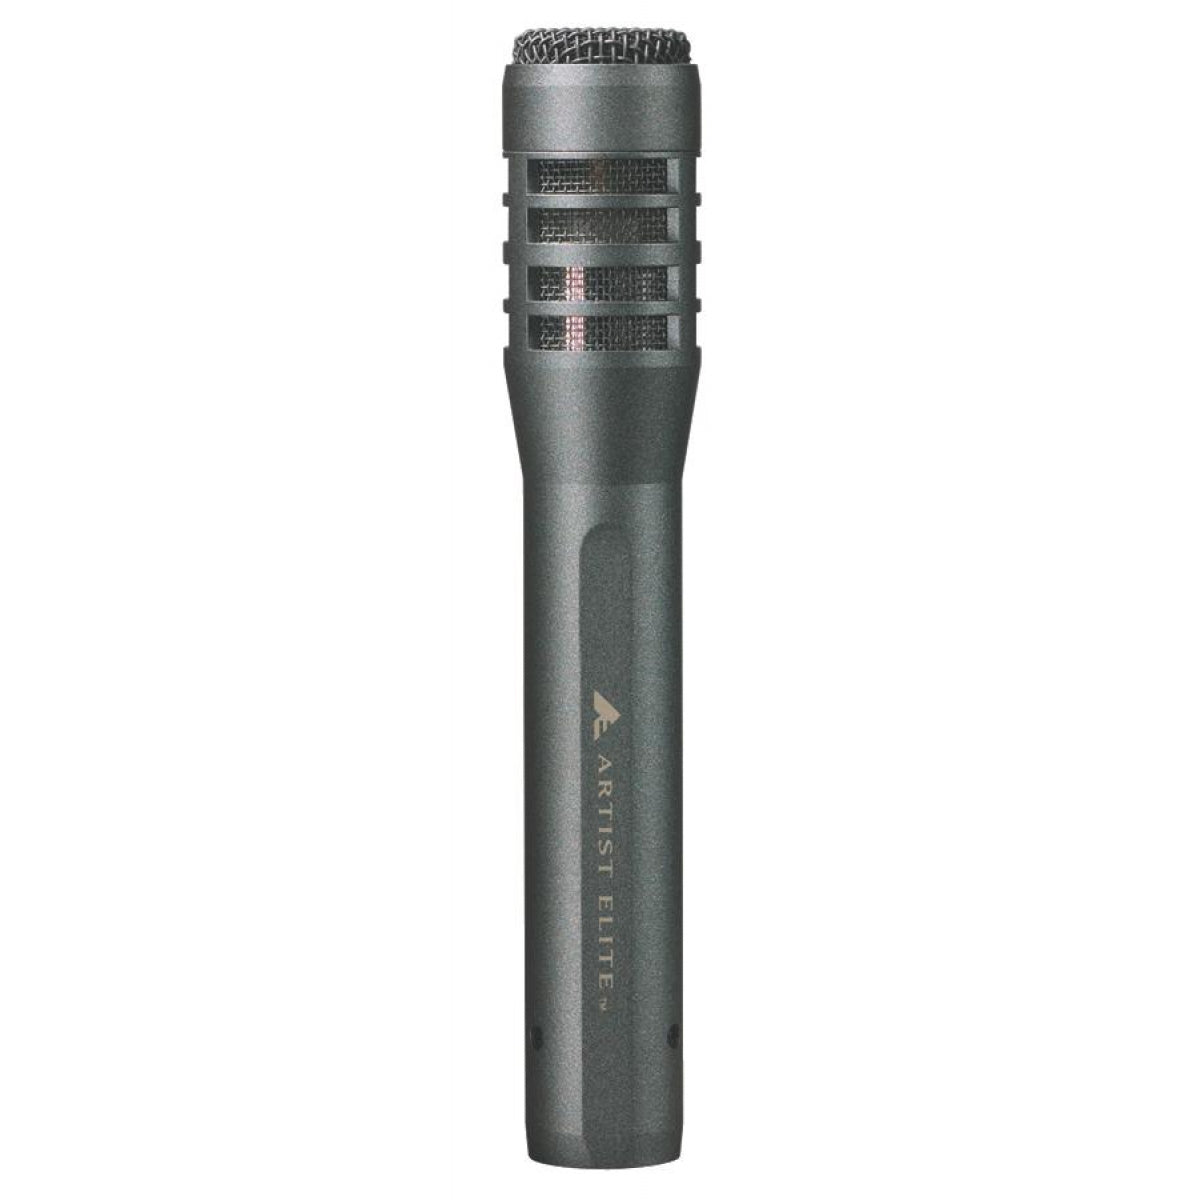 Audio-Technica AE5100 Condenser Instrument Microphone